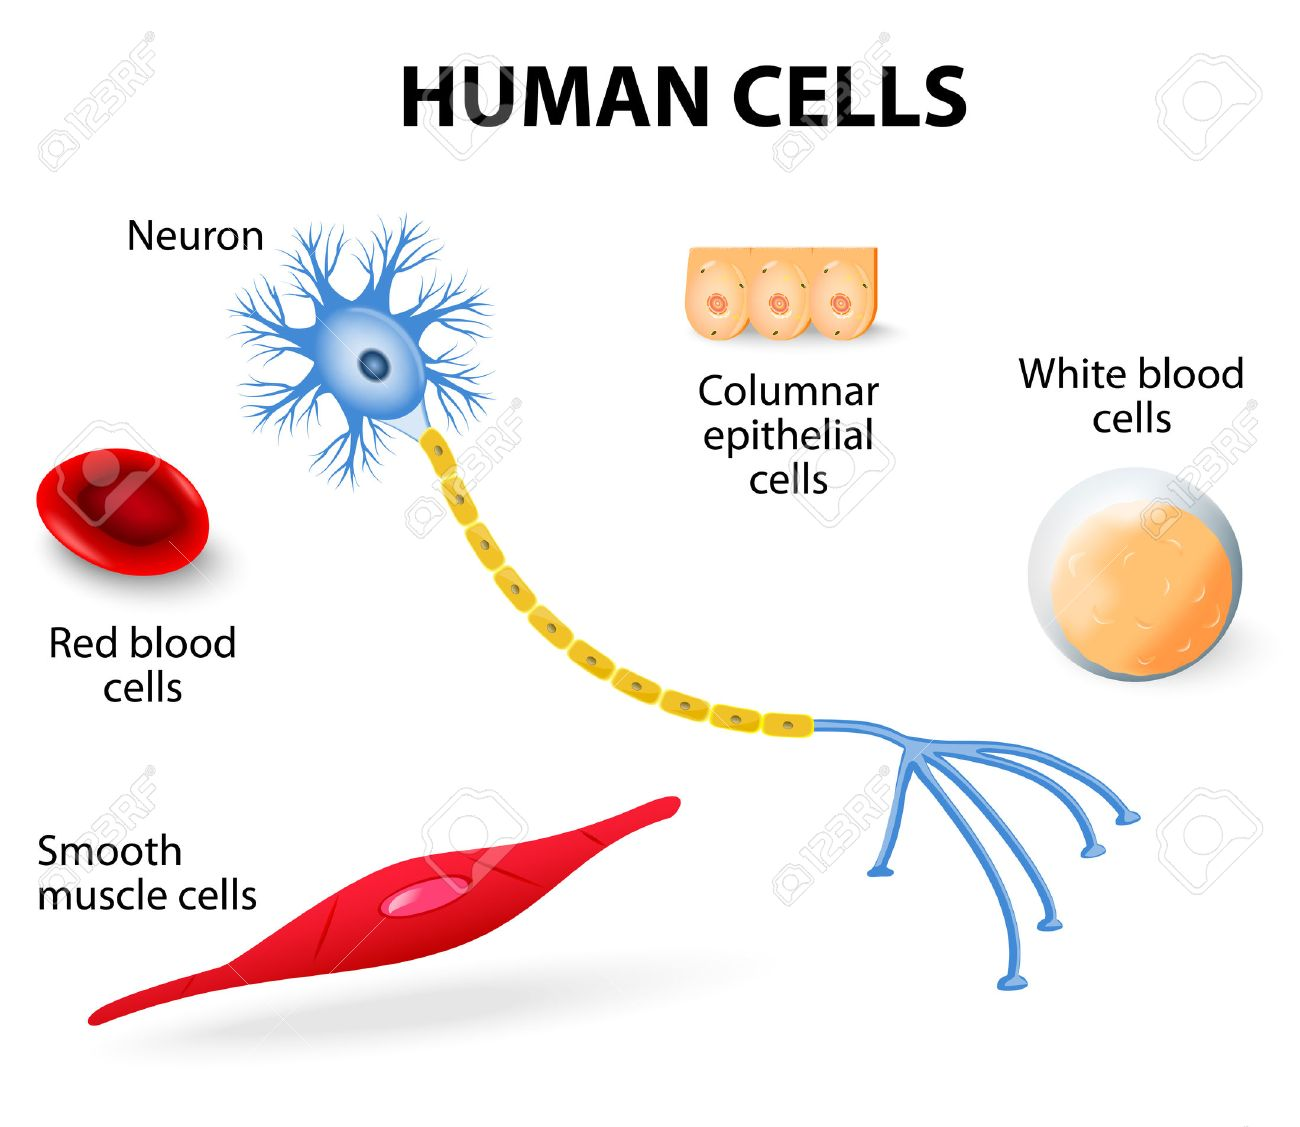 hight resolution of anatomy of human cells neuron red and white blood cell columnar epithelial cells and